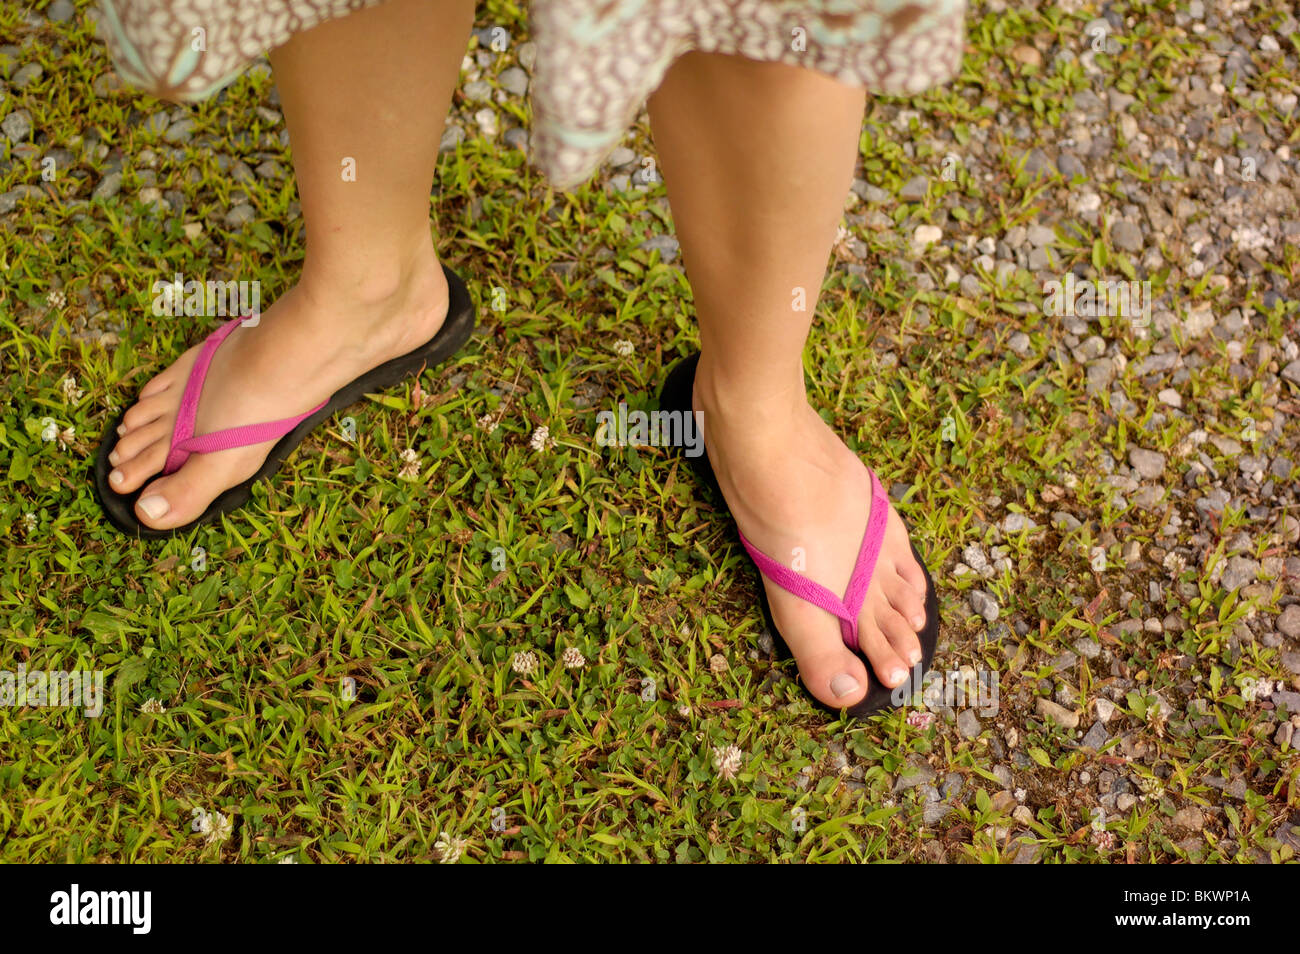 2a752c942f9b1 Stock photograph of a woman s feet wearing beach sandals. - Stock Image